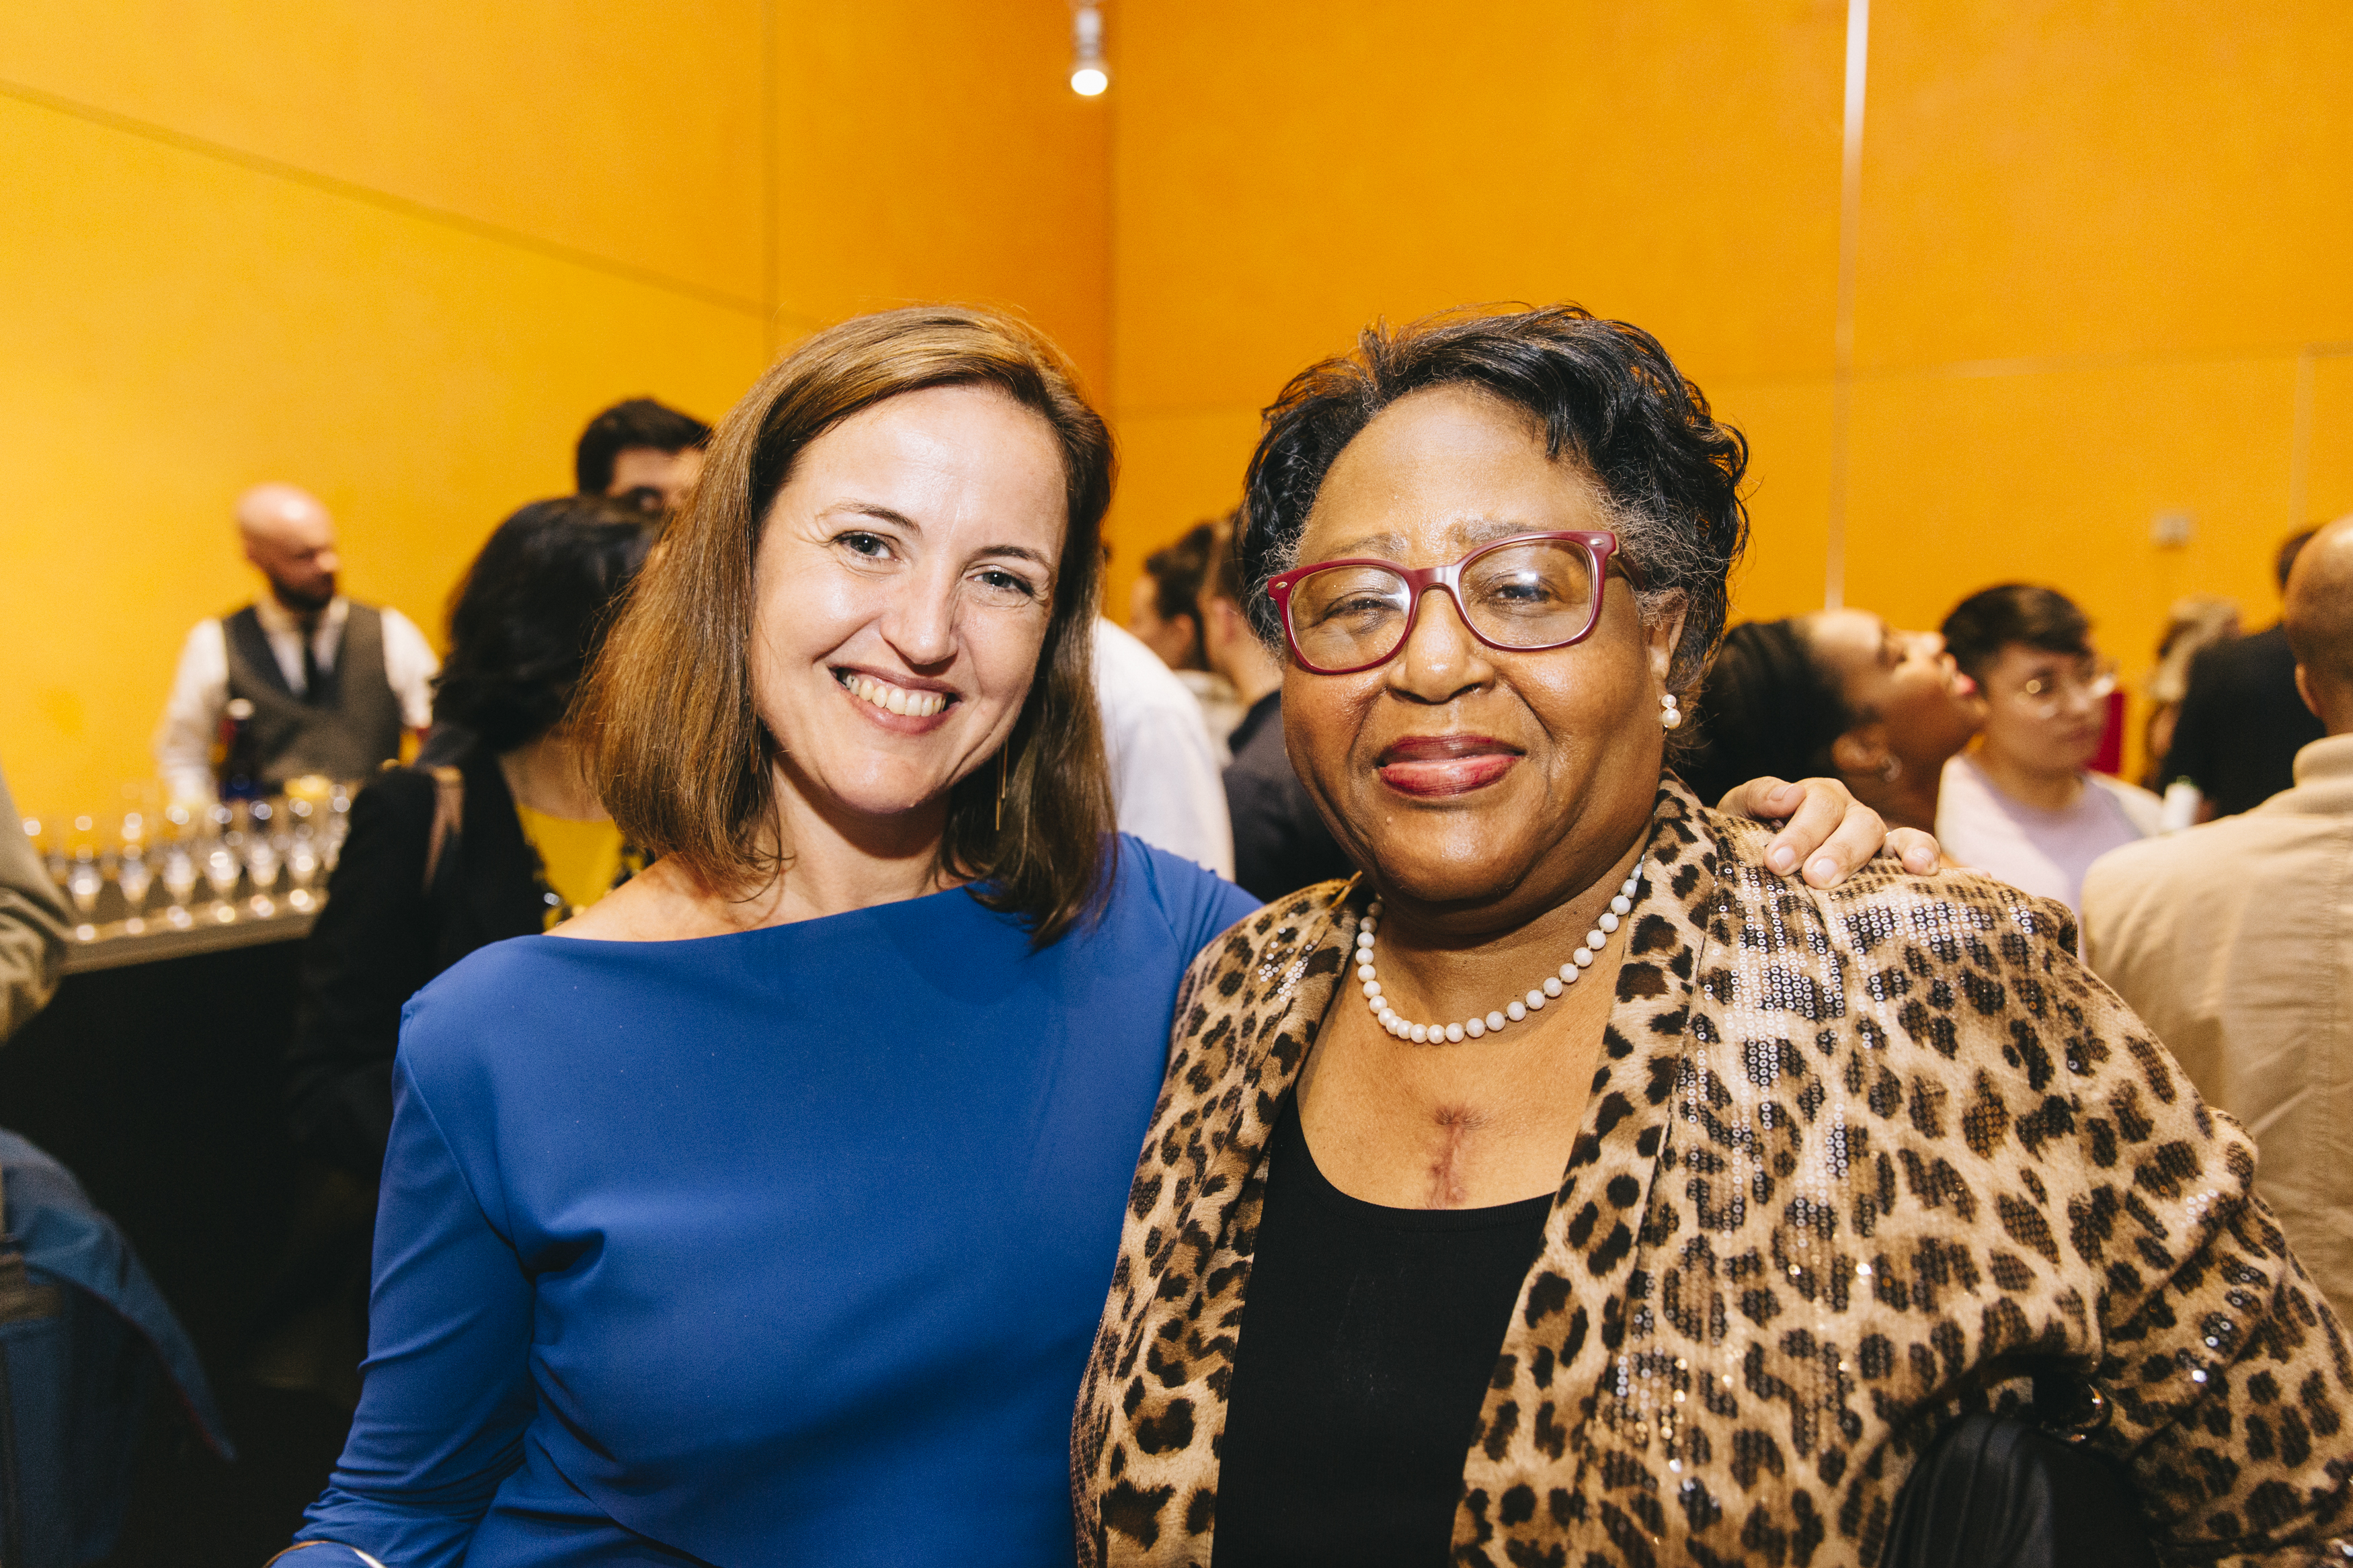 World Monuments Fund CEO Bénédicte de Montlaur and Joyce O'Neal. Image credit: Rowa Lee.